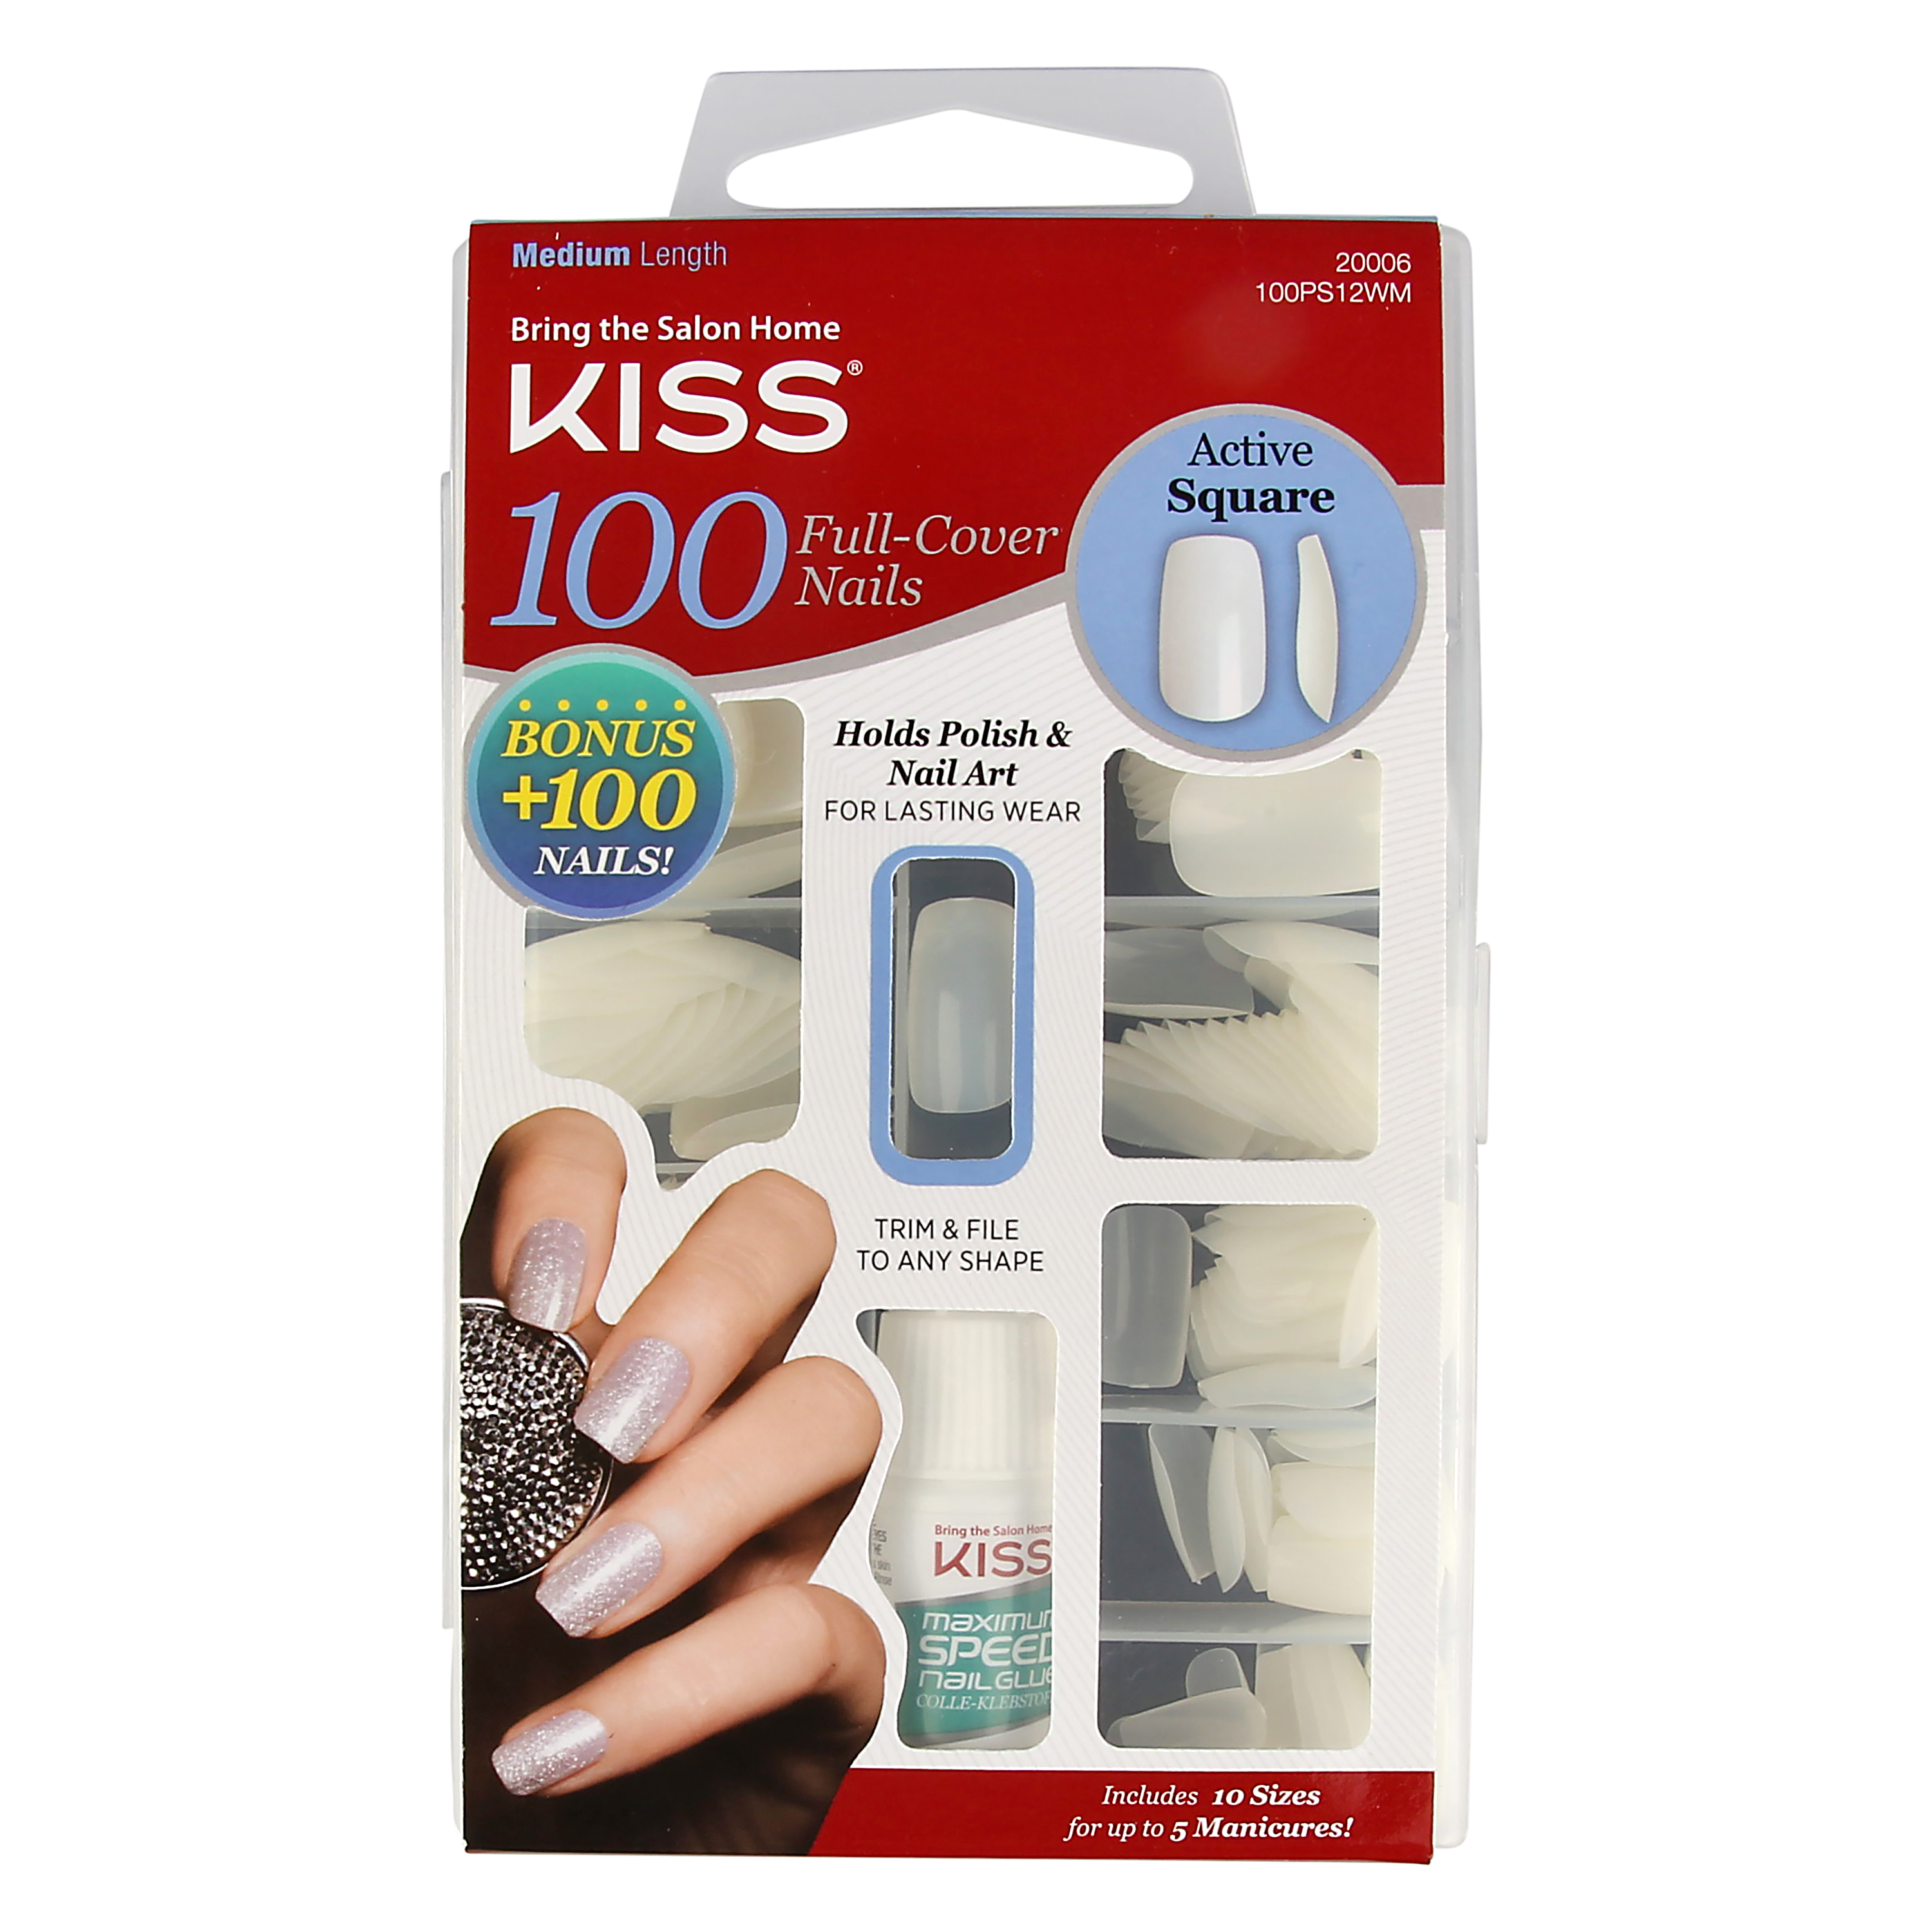 Kiss Natural-Looking Square-Shaped, Active/Medium Length, Full-Cover Artificial Nails Kit, 100 + 100 bonus nails and 0.10 oz. nail glue in container